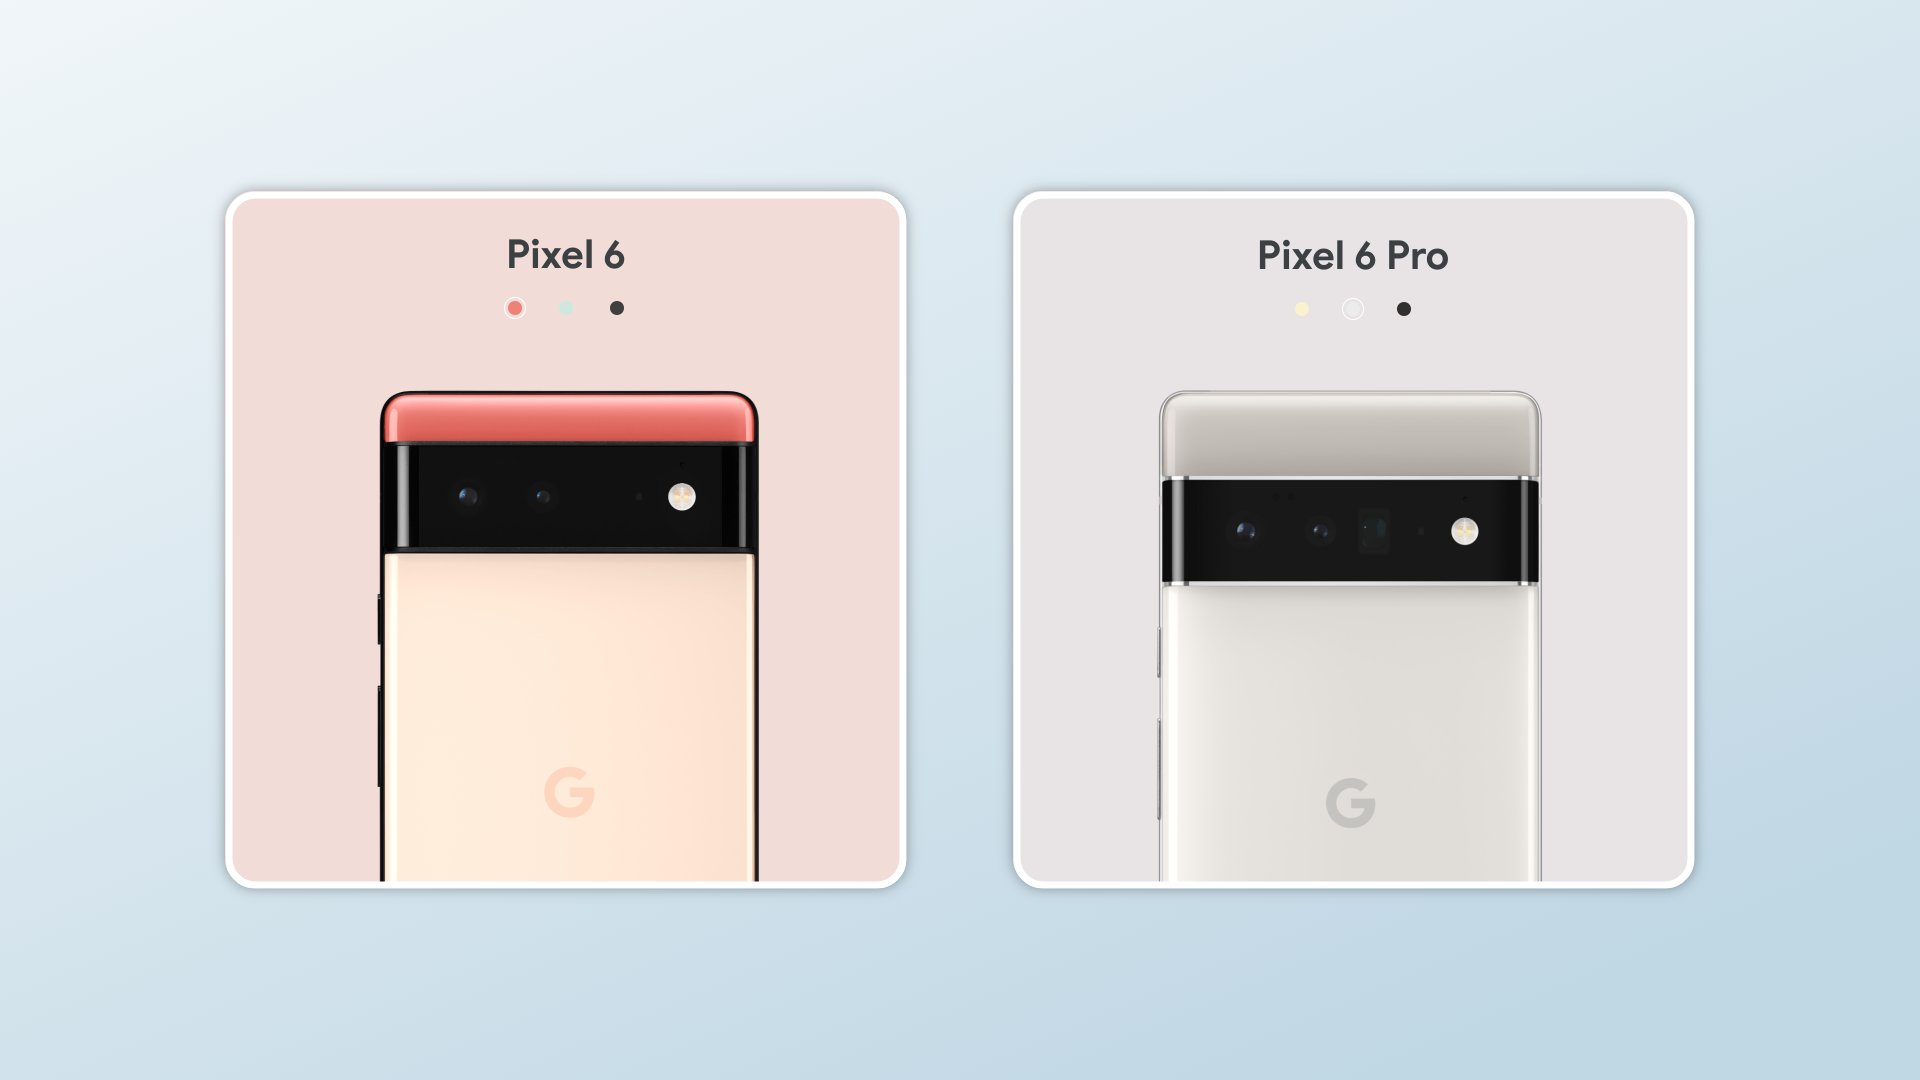 New leak suggests the Pixel 6 and Pixel 6 camera setups aren't as similar as we thought